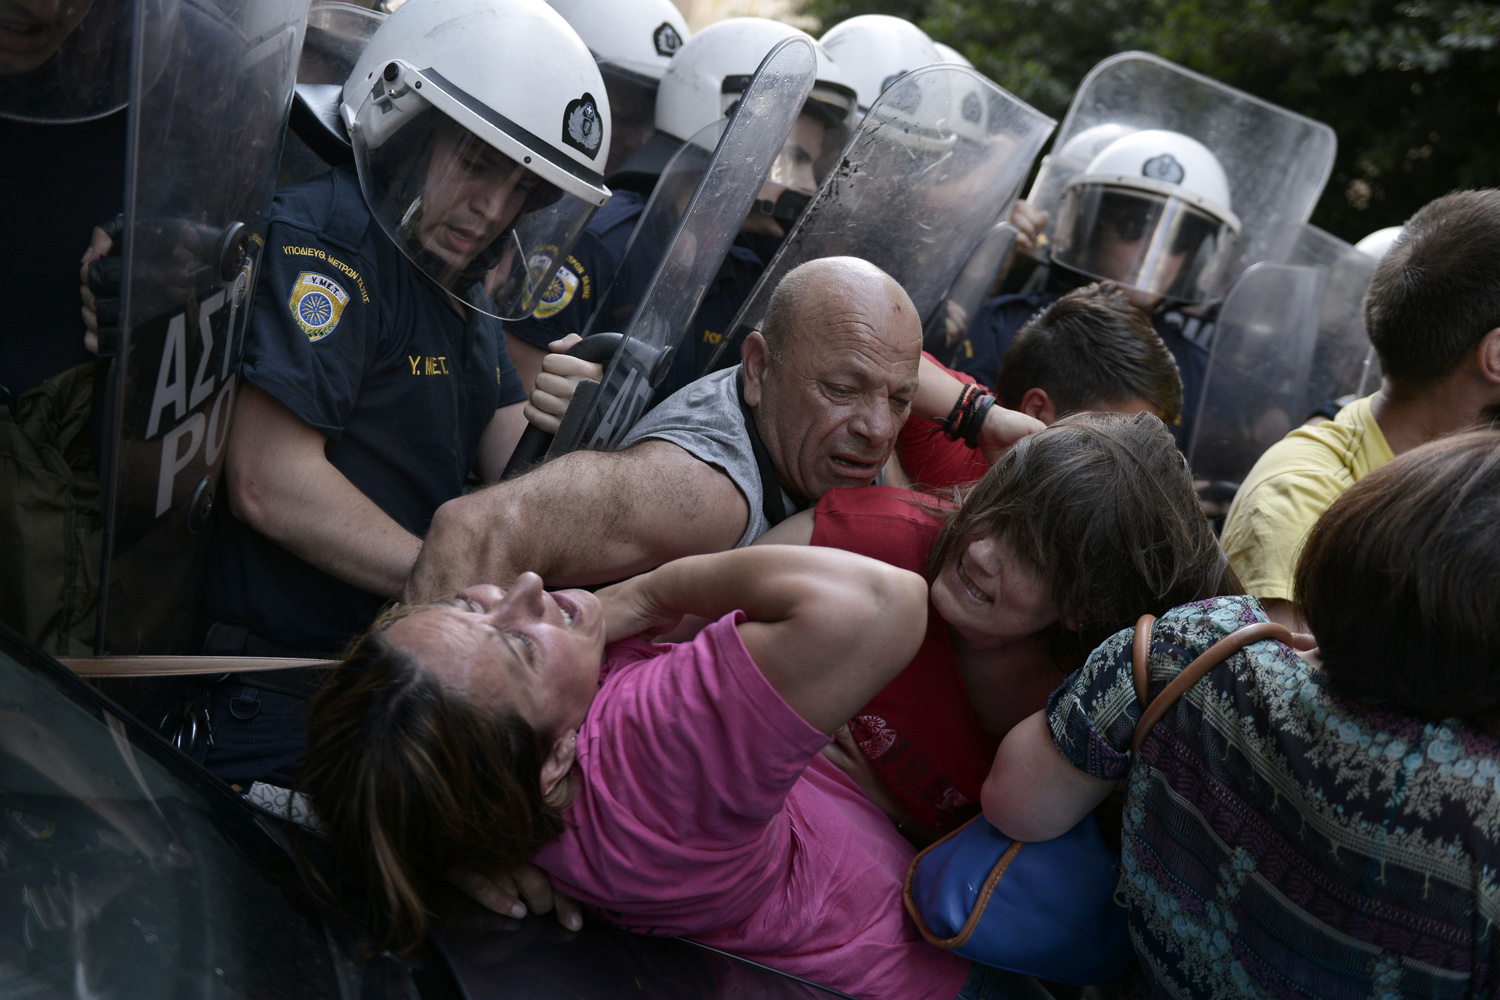 Jun. 12, 2014. Cleaners laid-off by the Finance ministry are pushed back by riot police in their attempt to protest outside the ministry in Athens.